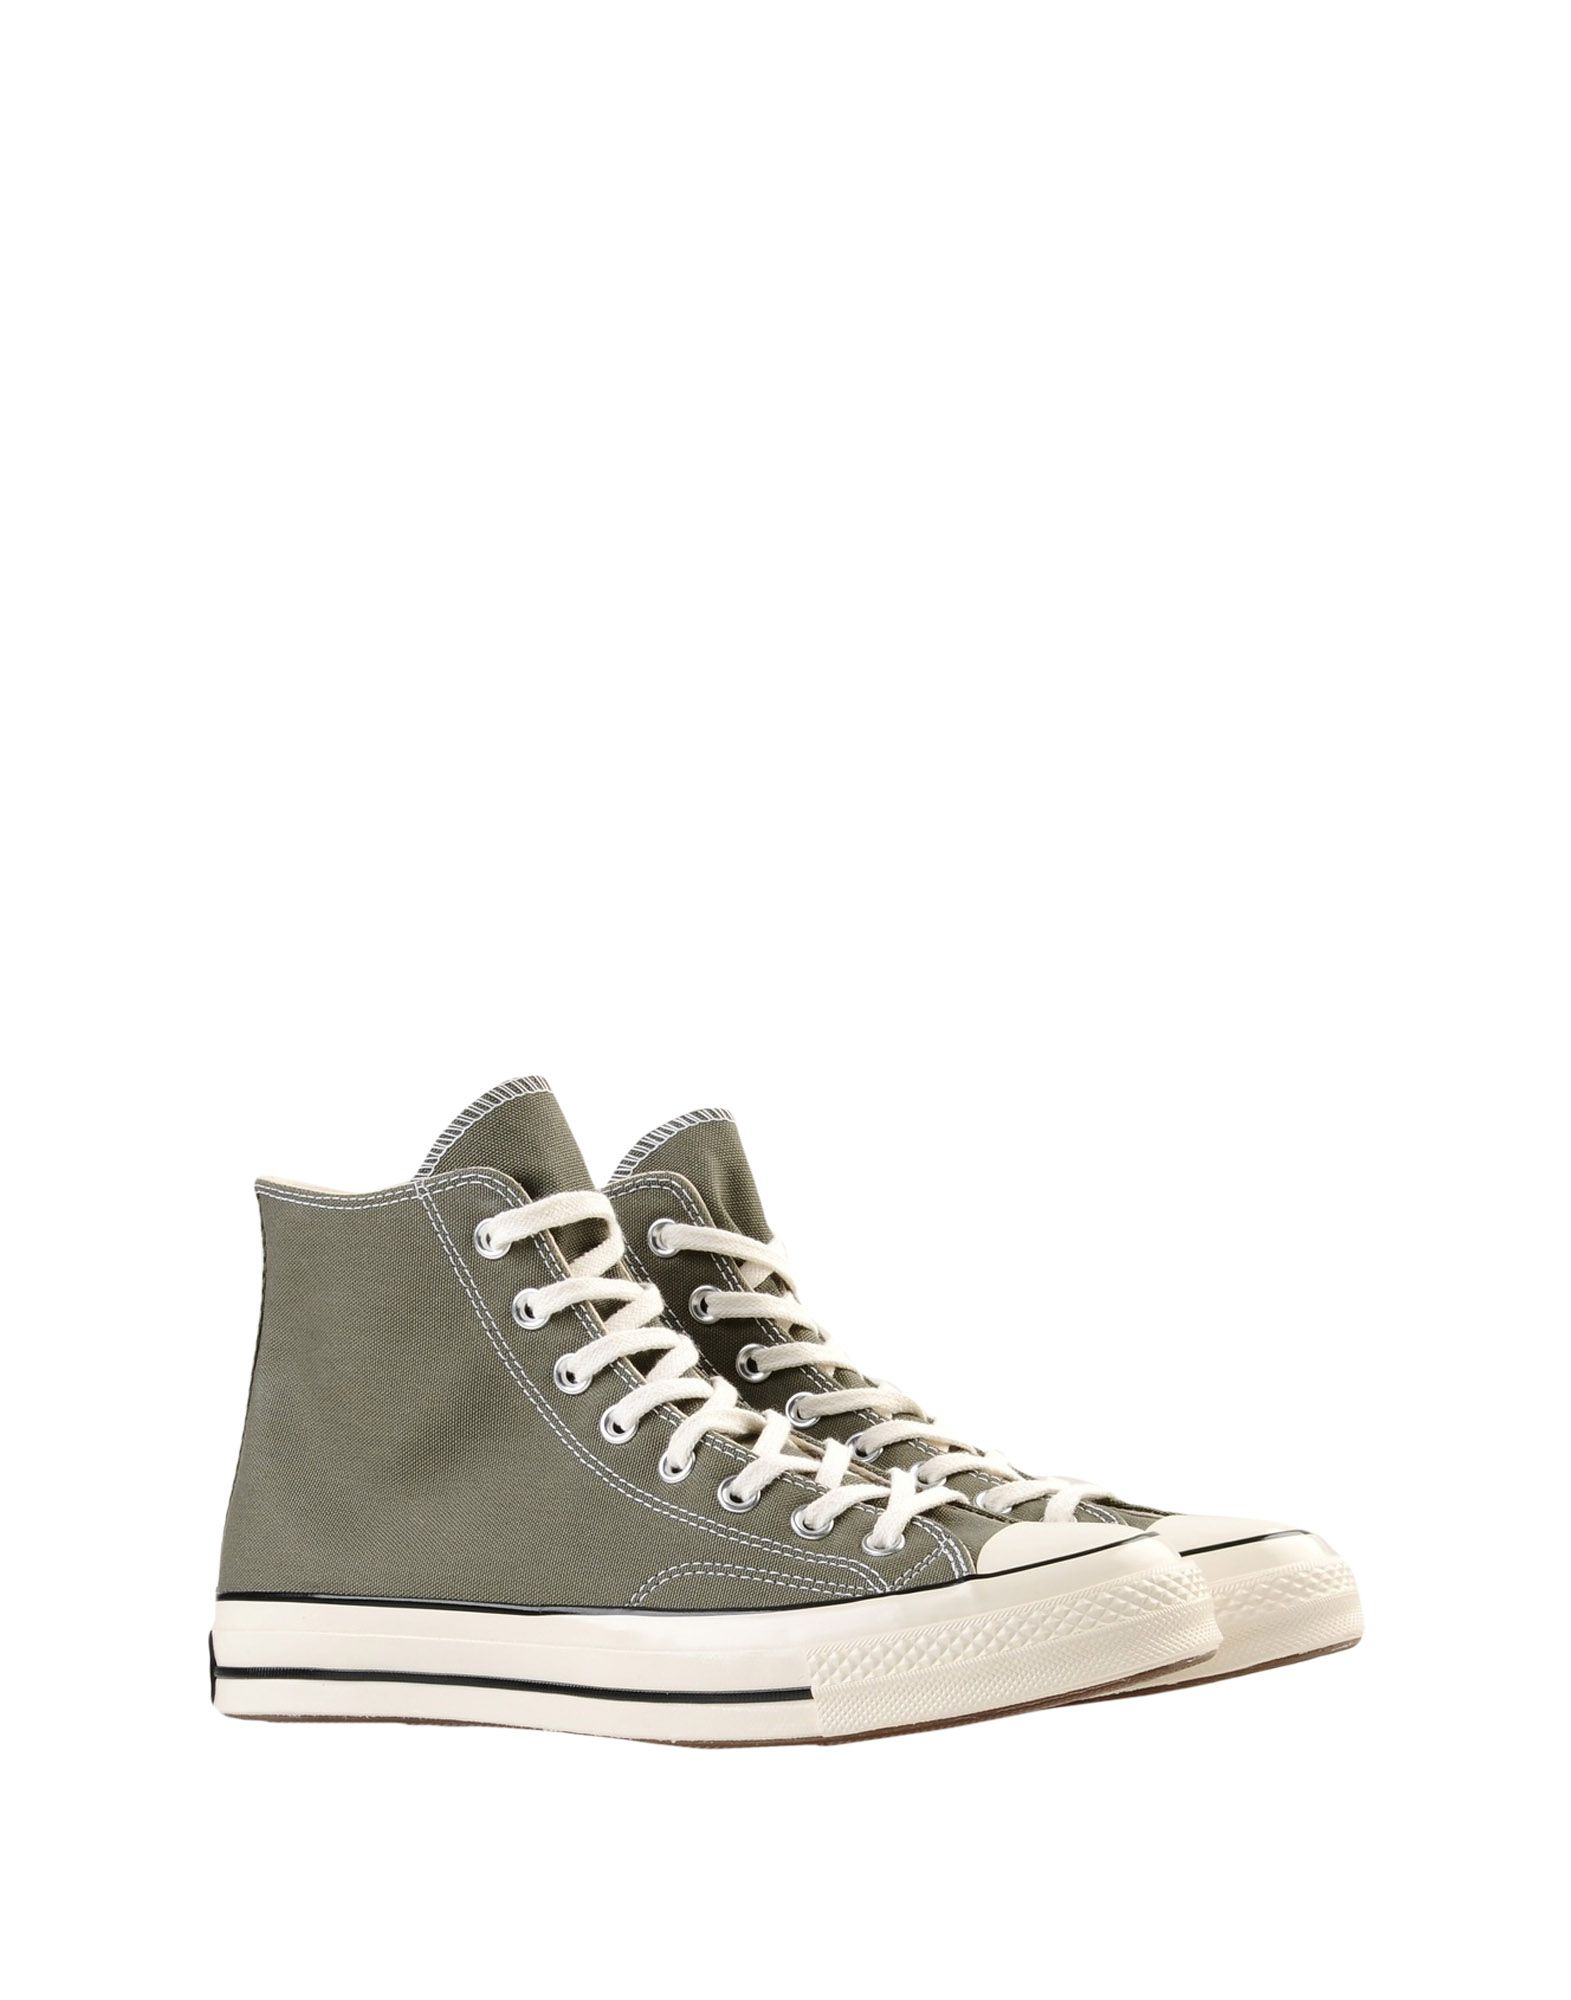 0ab31c19de3 CONVERSE ALL STAR ΠΑΠΟΥΤΣΙΑ Χαμηλά sneakers, Ανδρικά sneakers, ΑΝΔΡΑΣ |  ΠΑΠΟΥΤΣΙΑ | SNEAKERS